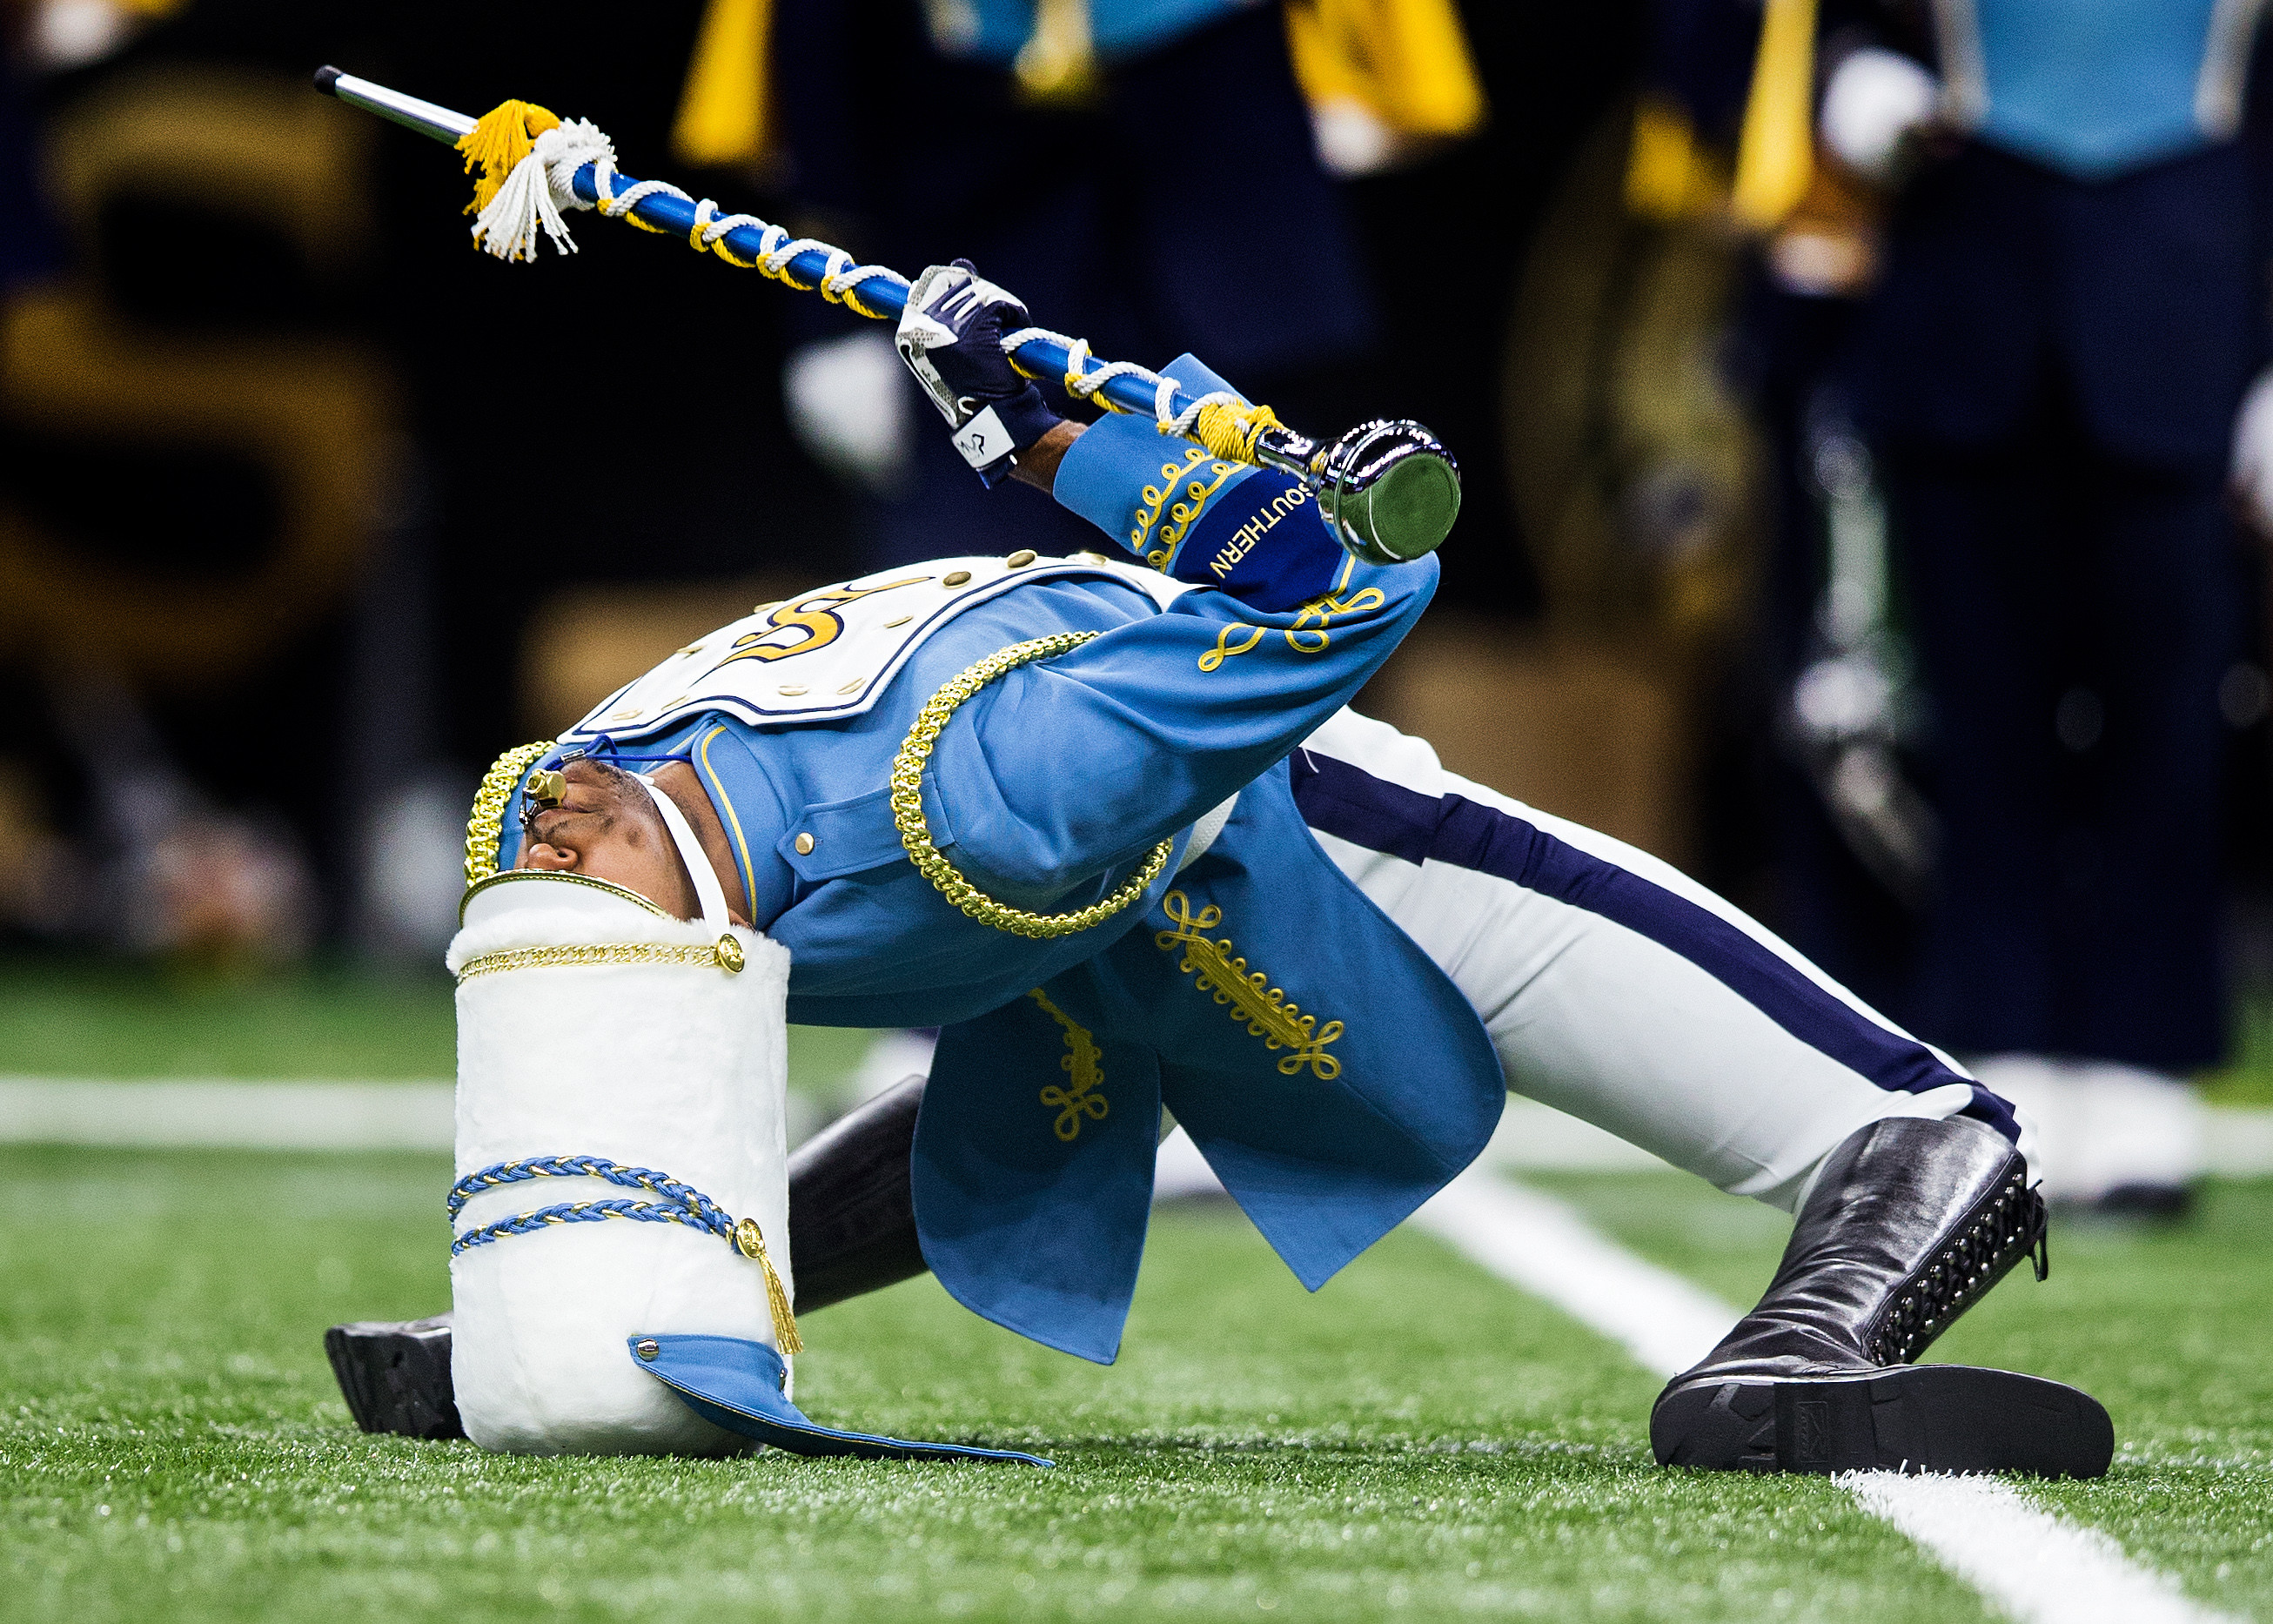 The Southern University Jaguars marching band entertain the crowd during the Bayou Classic with the Southern University Jaguars versus the Grambling State Tigers on November 26, 2016 at the Mercedes-Benz Superdome in New Orleans, Louisiana.